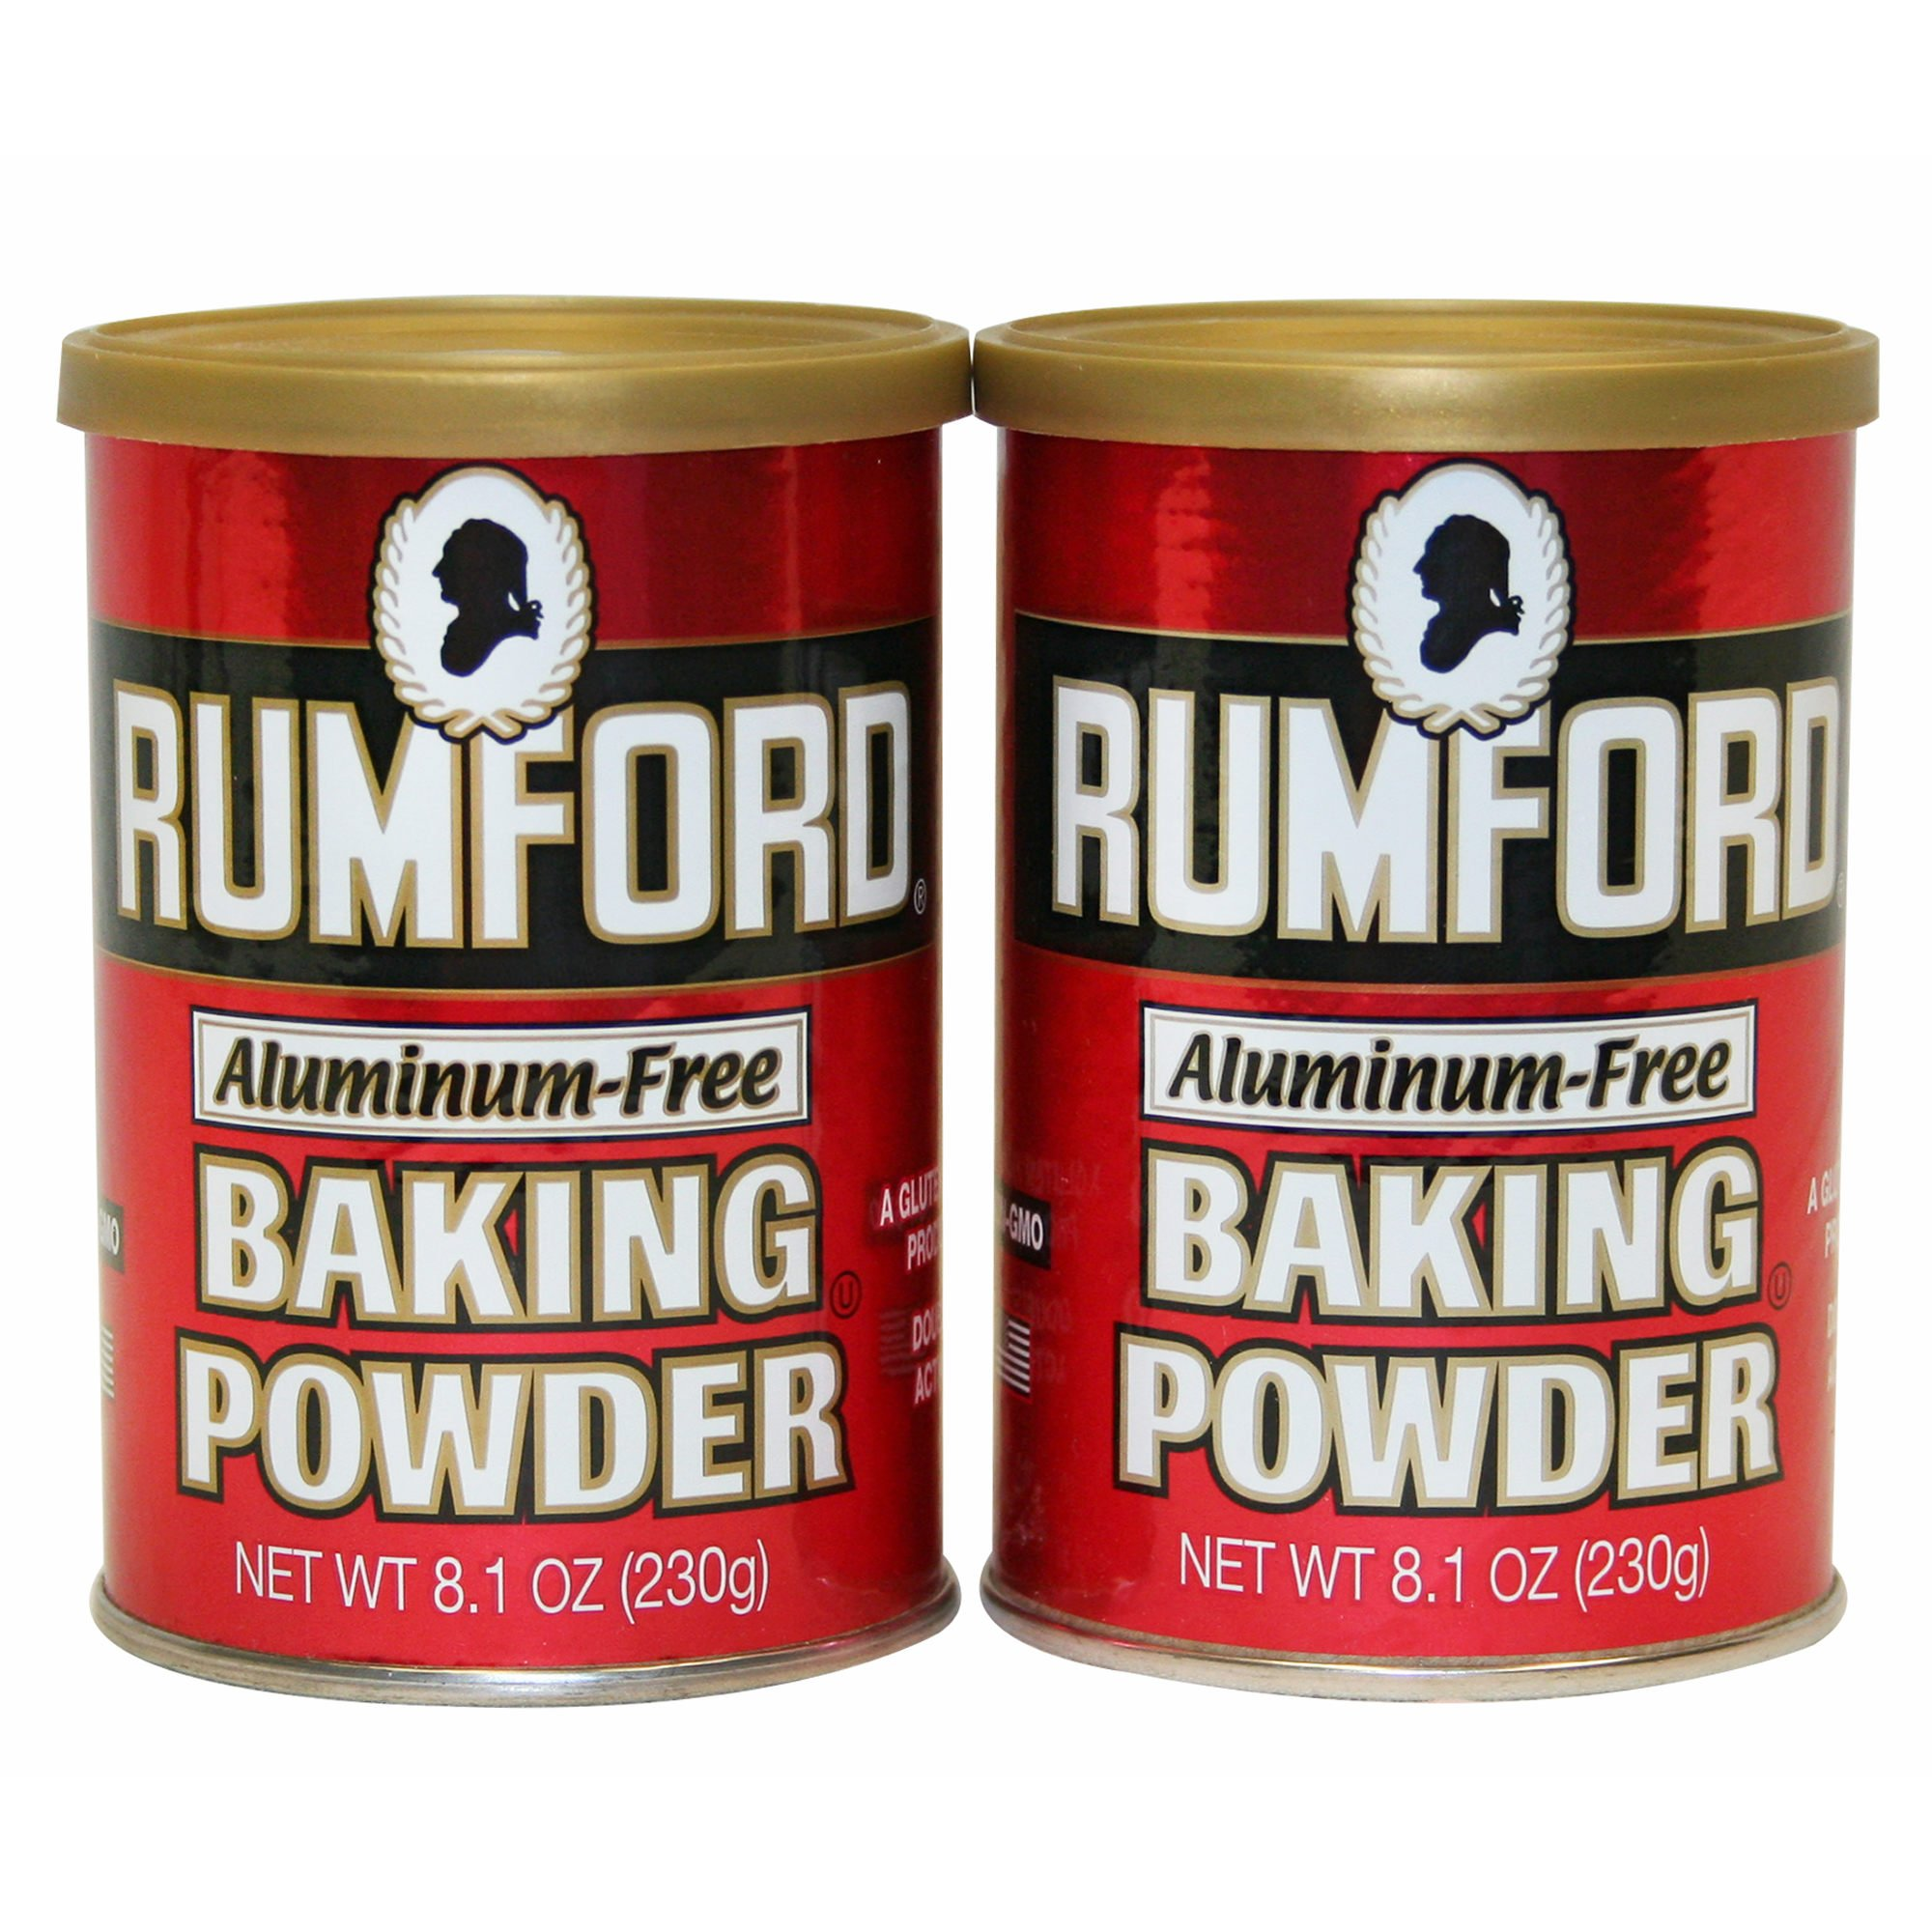 Rumford Aluminum-Free Baking Powder, 2 pk./8.1 oz. (pack of 6)